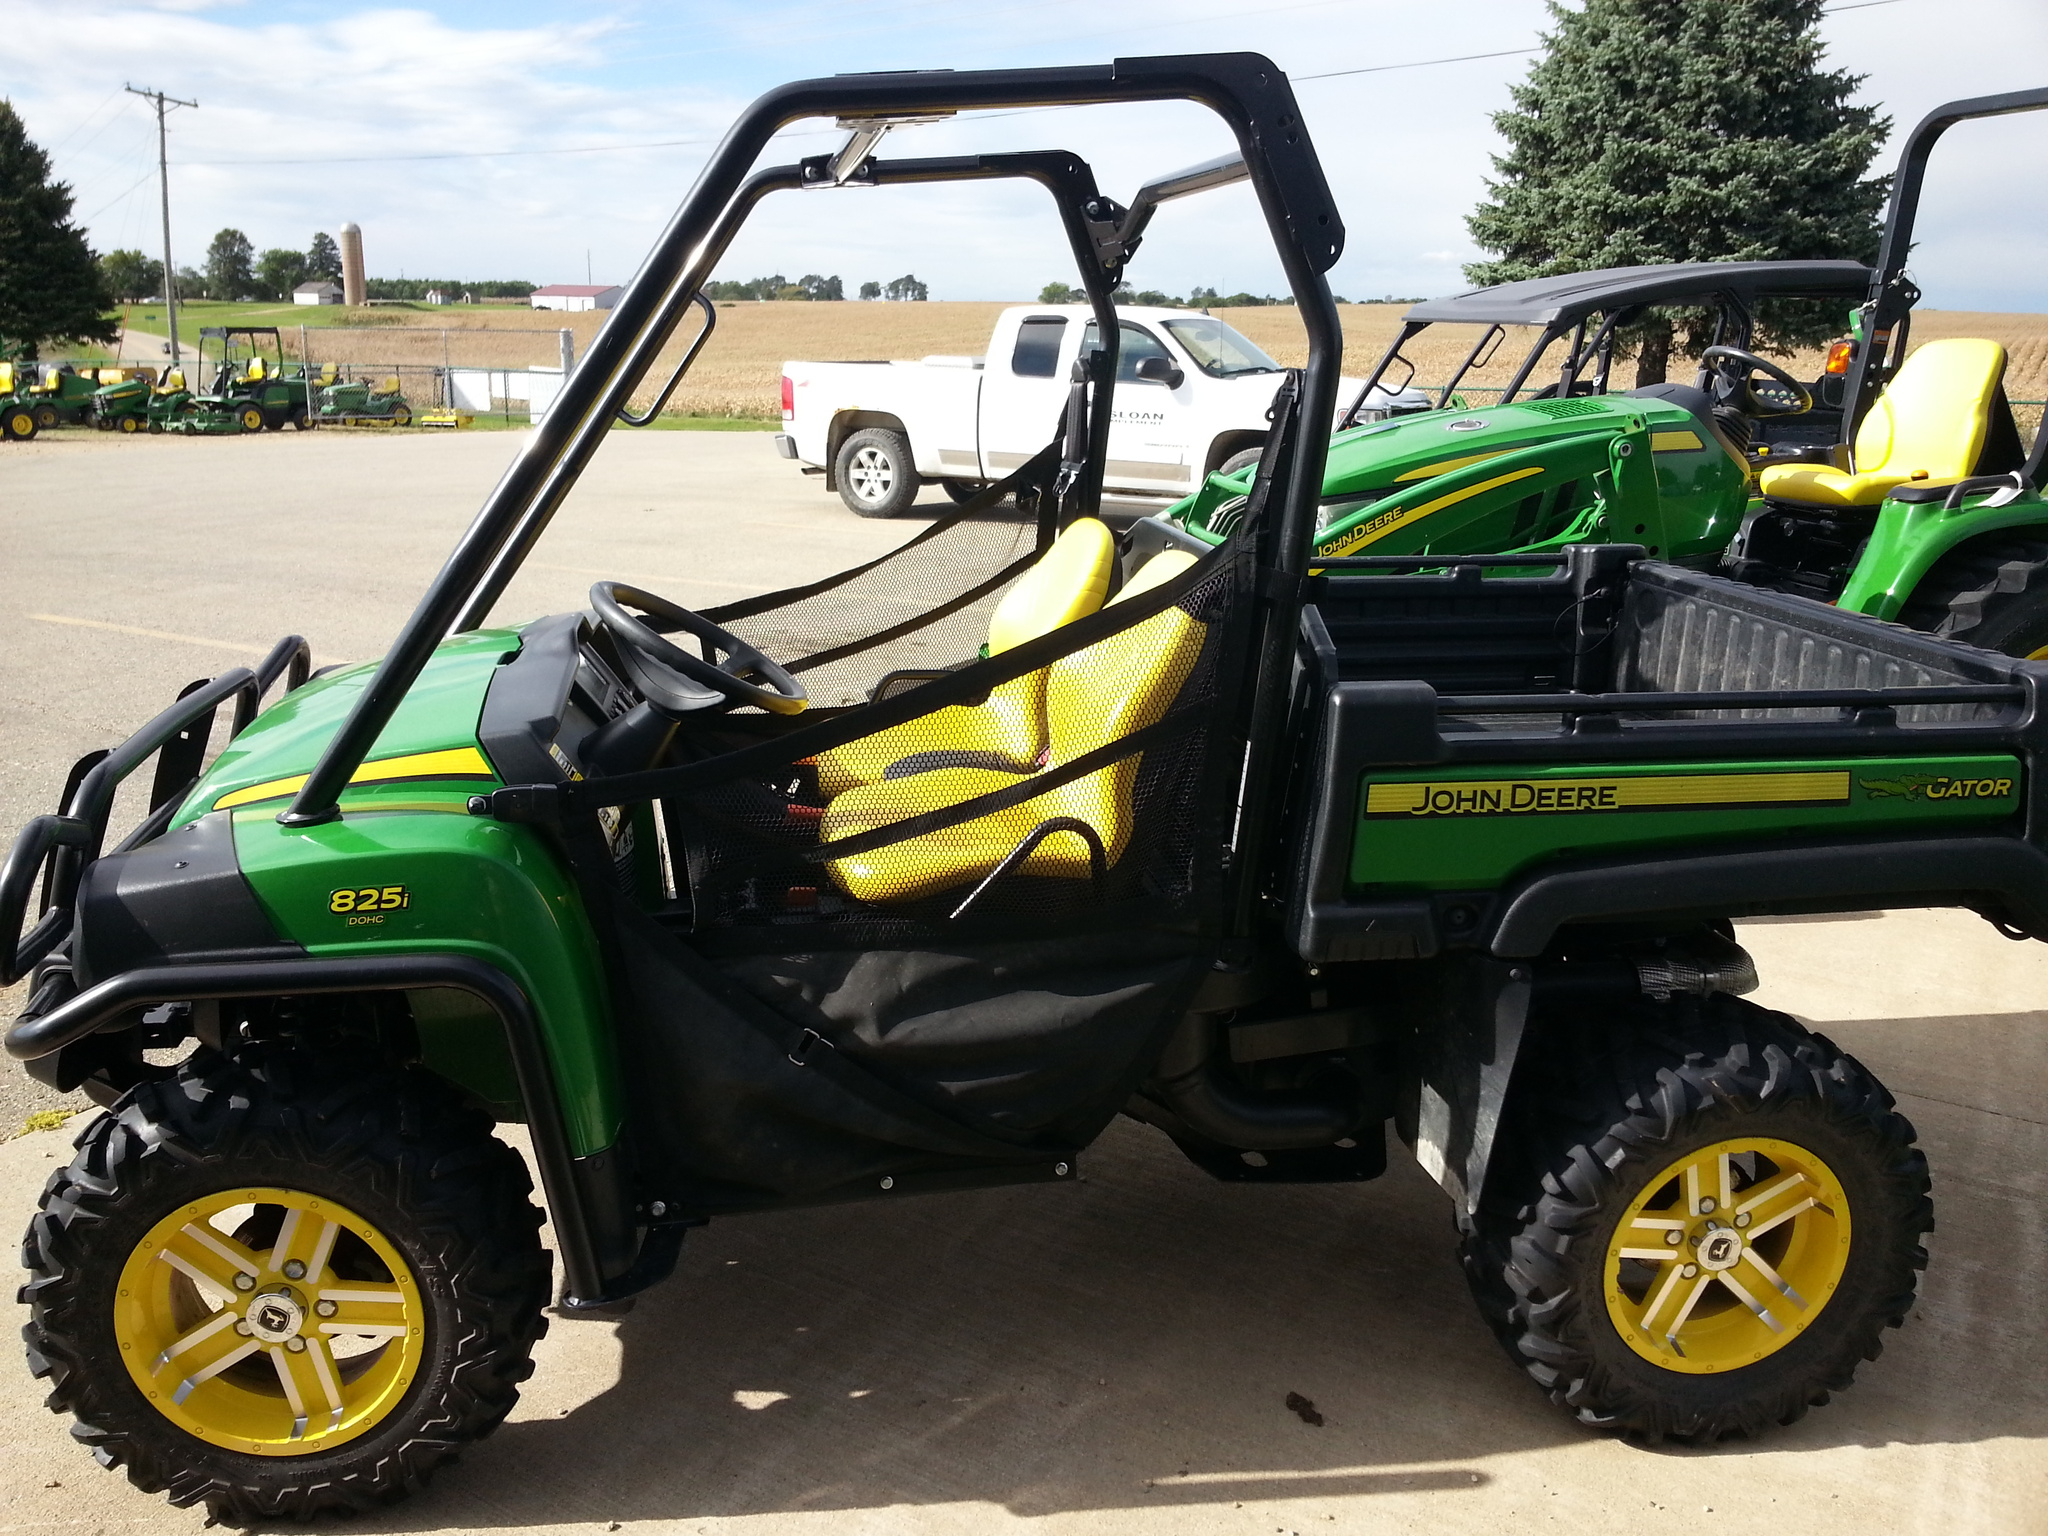 john deere xuv 825i atvs gators for sale 60613. Black Bedroom Furniture Sets. Home Design Ideas